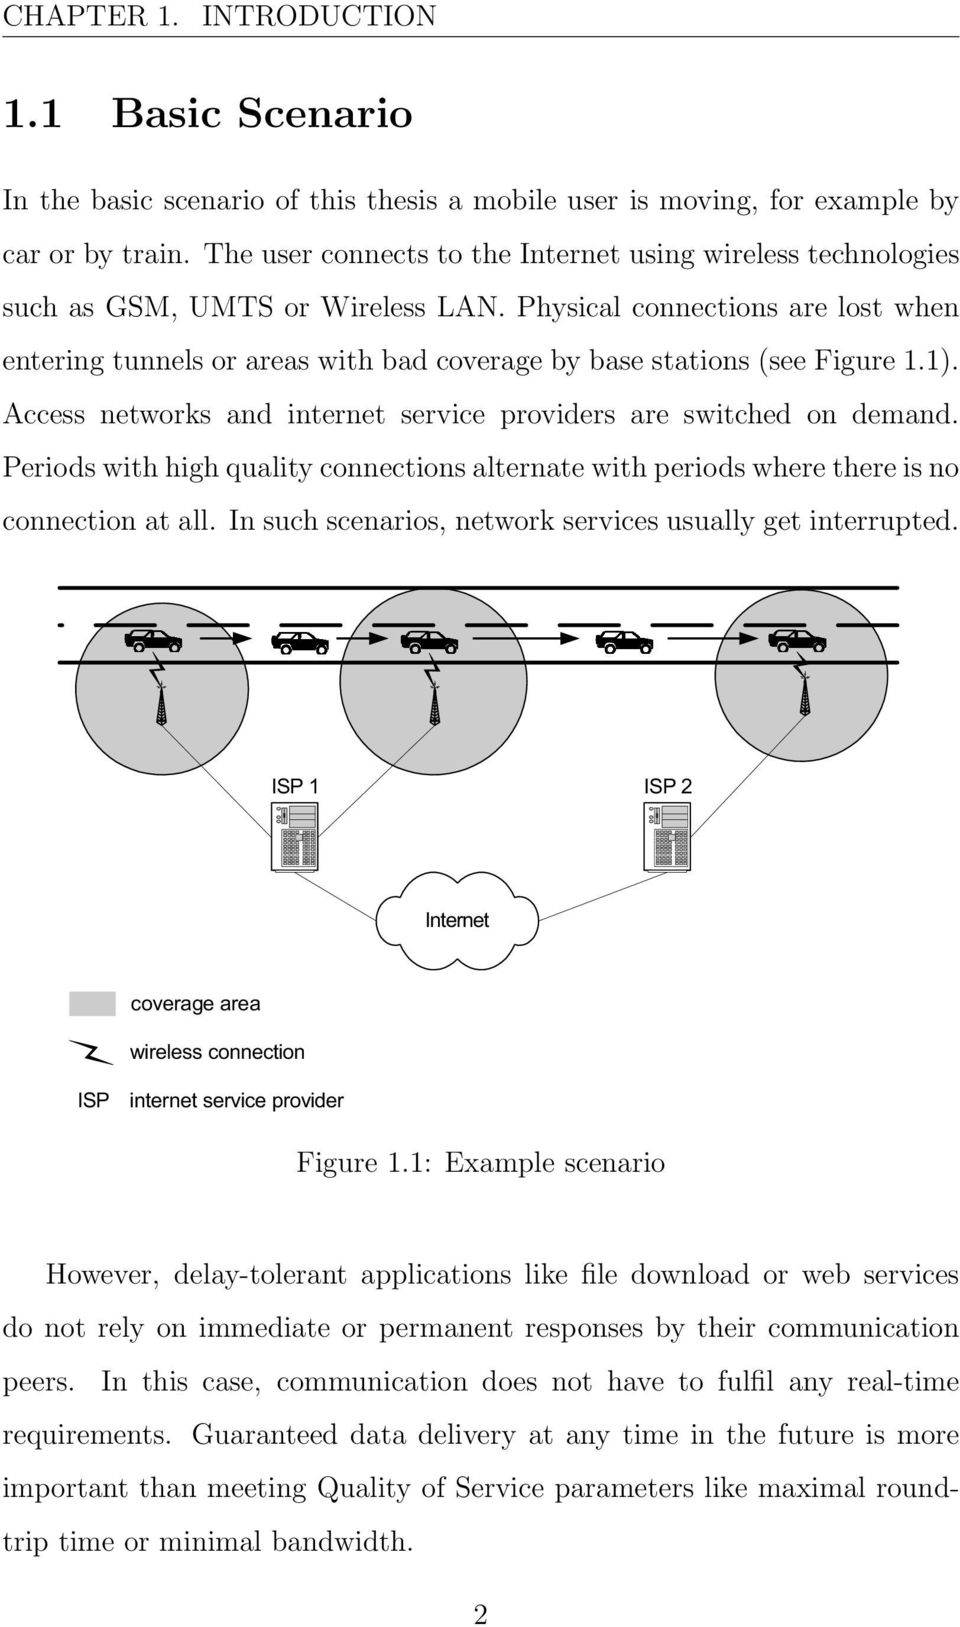 Physical connections are lost when entering tunnels or areas with bad coverage by base stations (see Figure 1.1). Access networks and internet service providers are switched on demand.